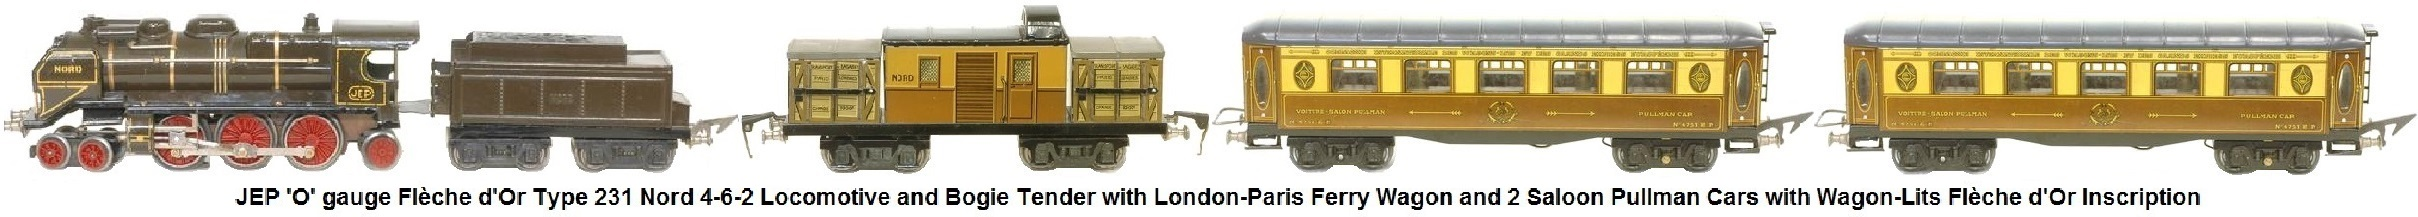 JEP 'O' gauge Nord 4-6-0 Locomotive and bogie Tender Flèche d'Or type 231 with London-Paris Ferry Wagon and 2 Saloon Pullman Cars with Wagon-Lits Flèche d'Or inscription circa 1935